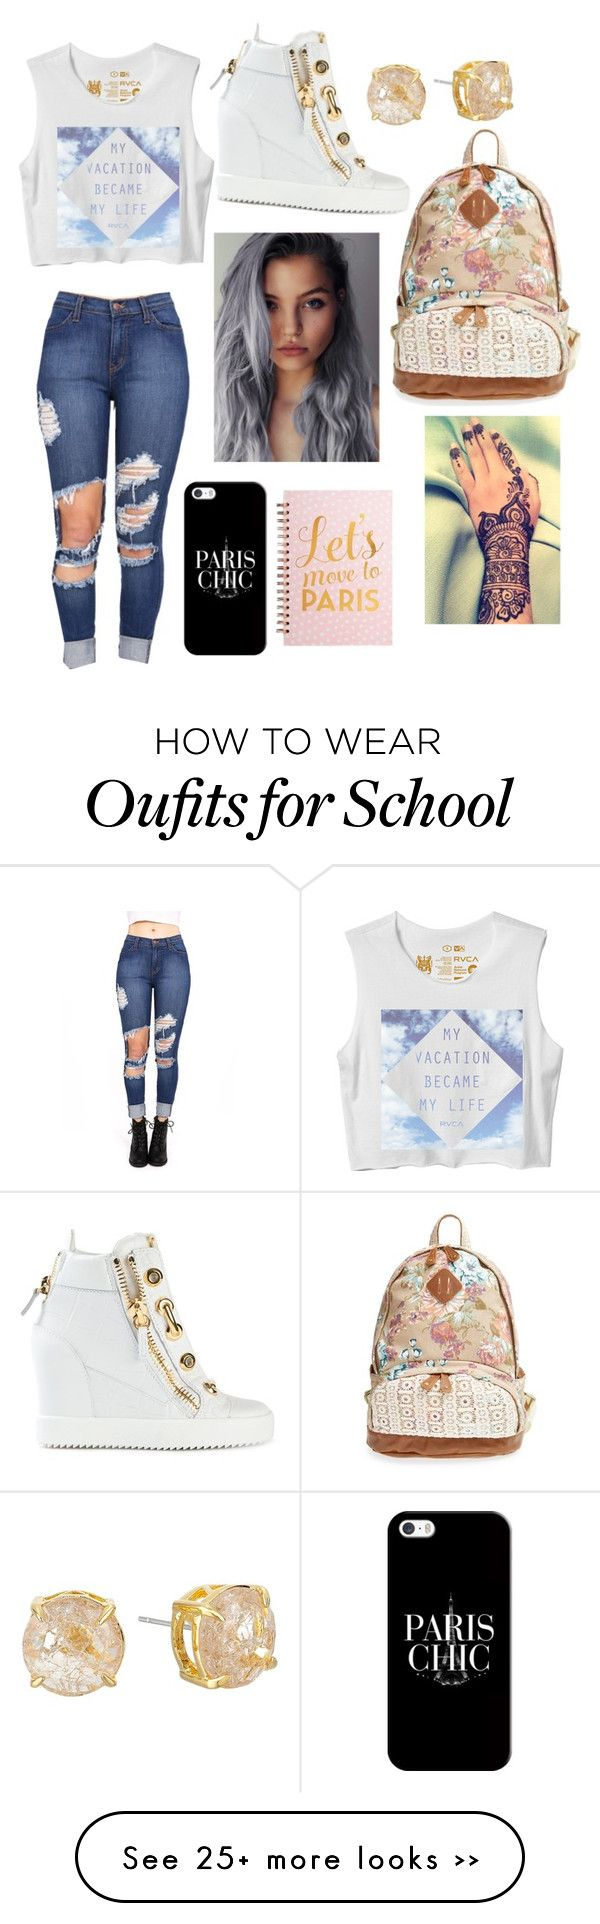 """Another school girl"" by taryngallion on Polyvore"